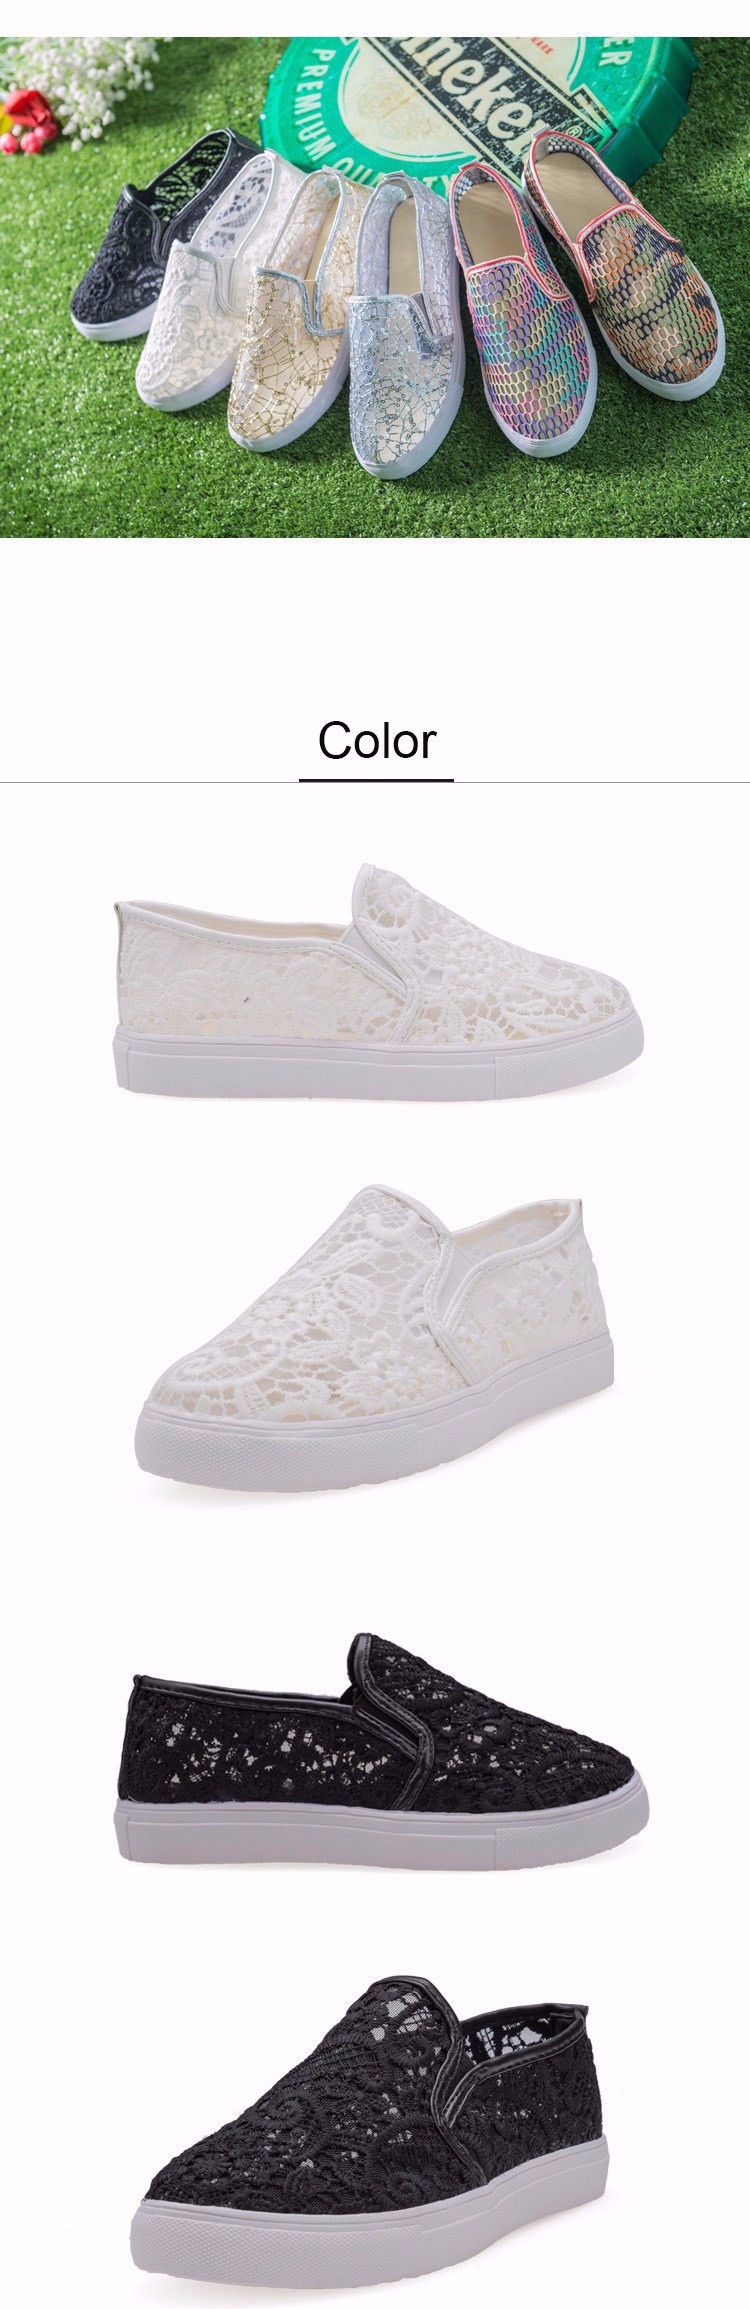 ee4707de9bf DreamShining Latest Design Hollow Out Shoes Fashion Summer Slipony ...